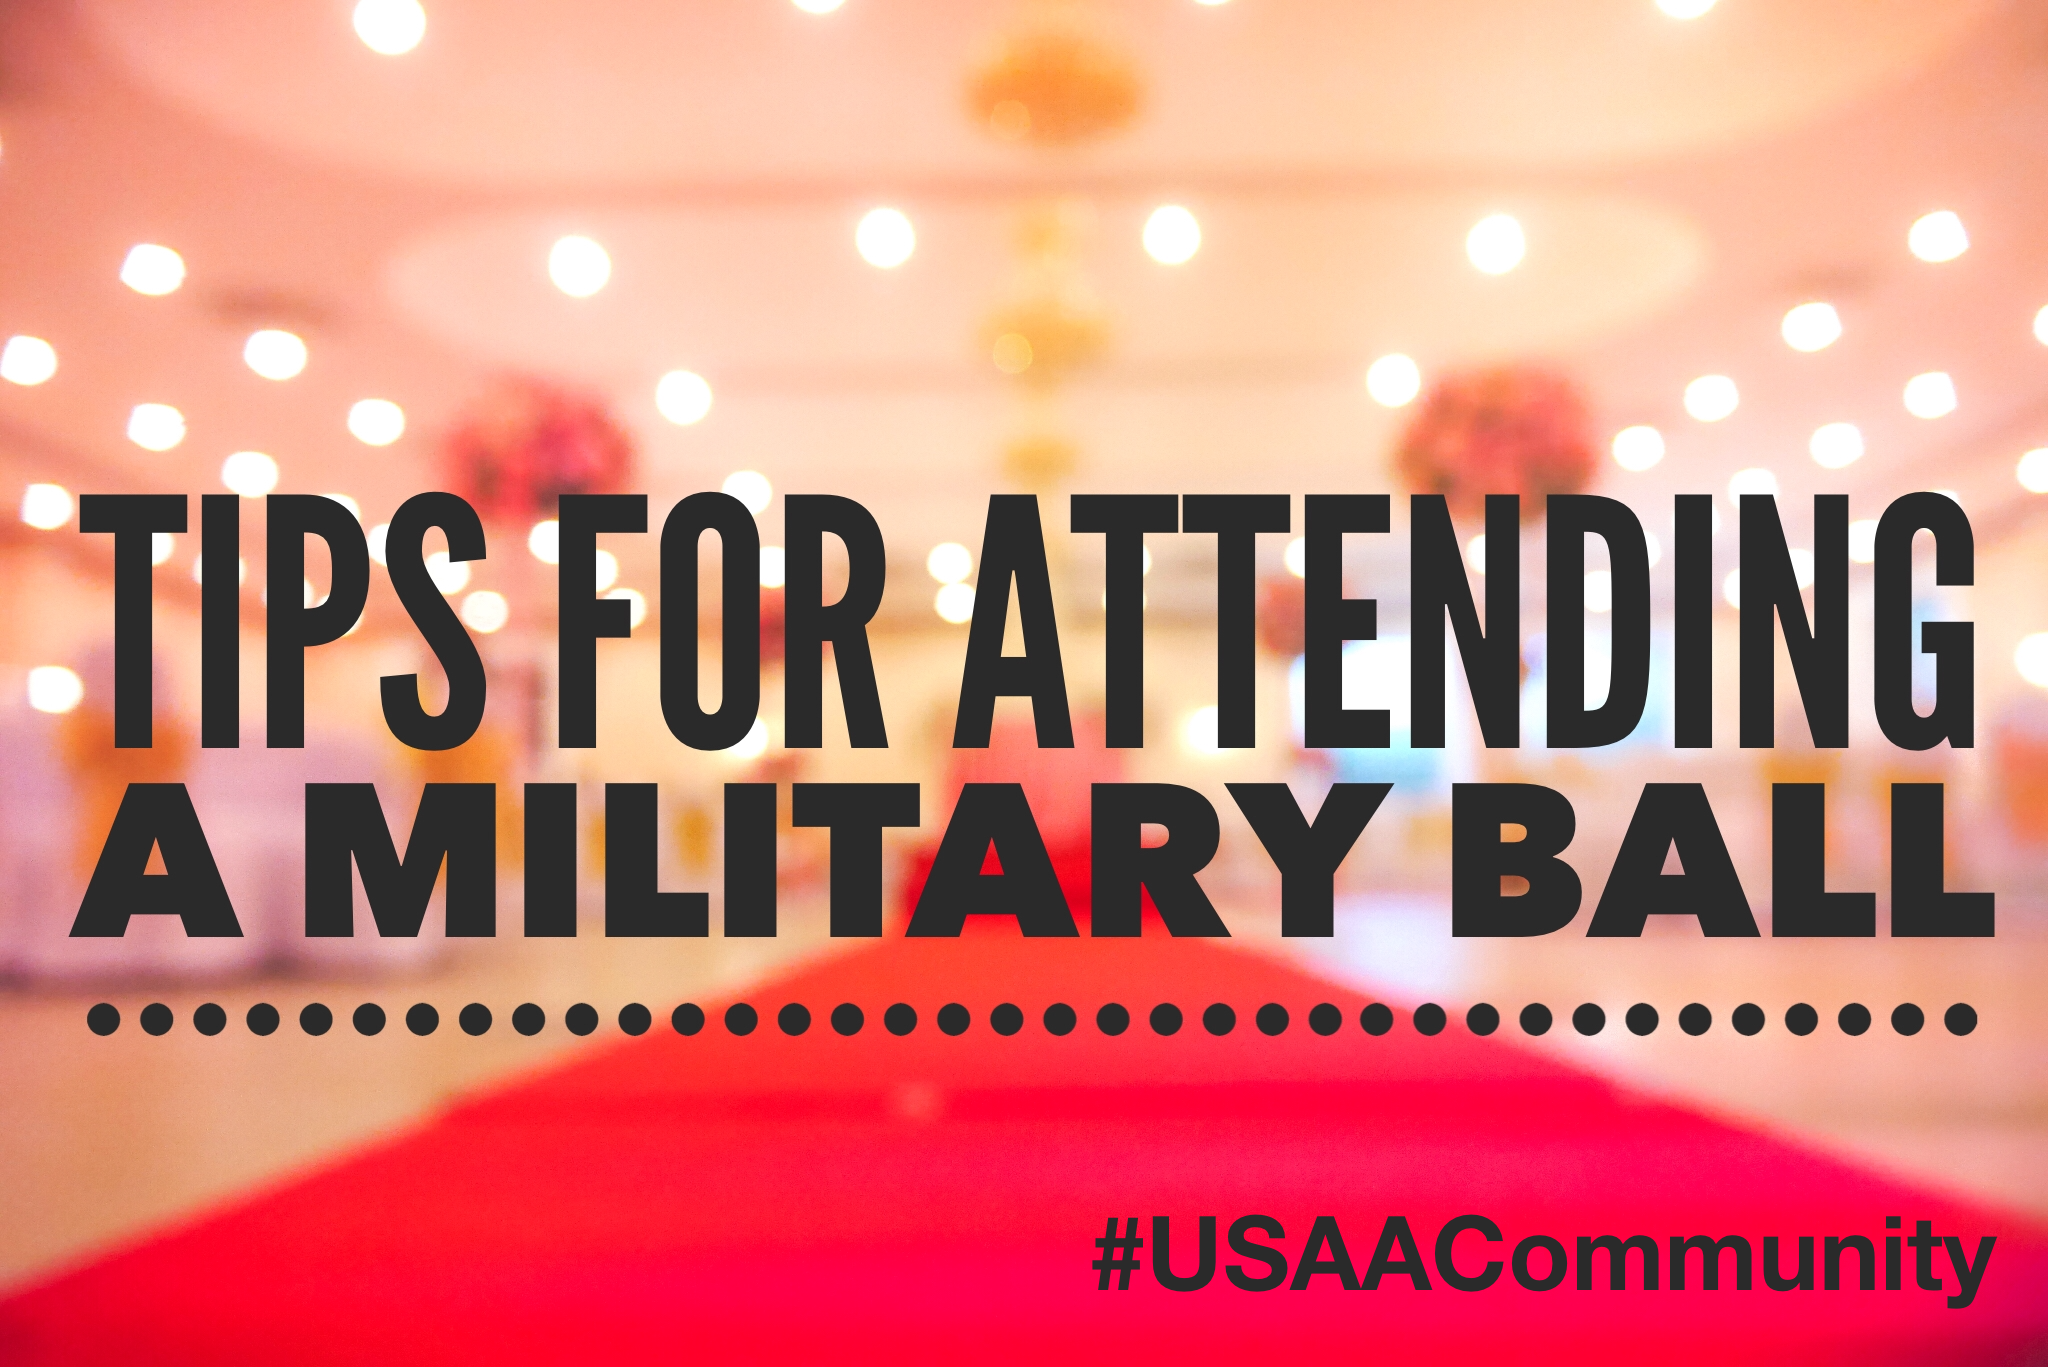 Tips for Attending a Military Ball